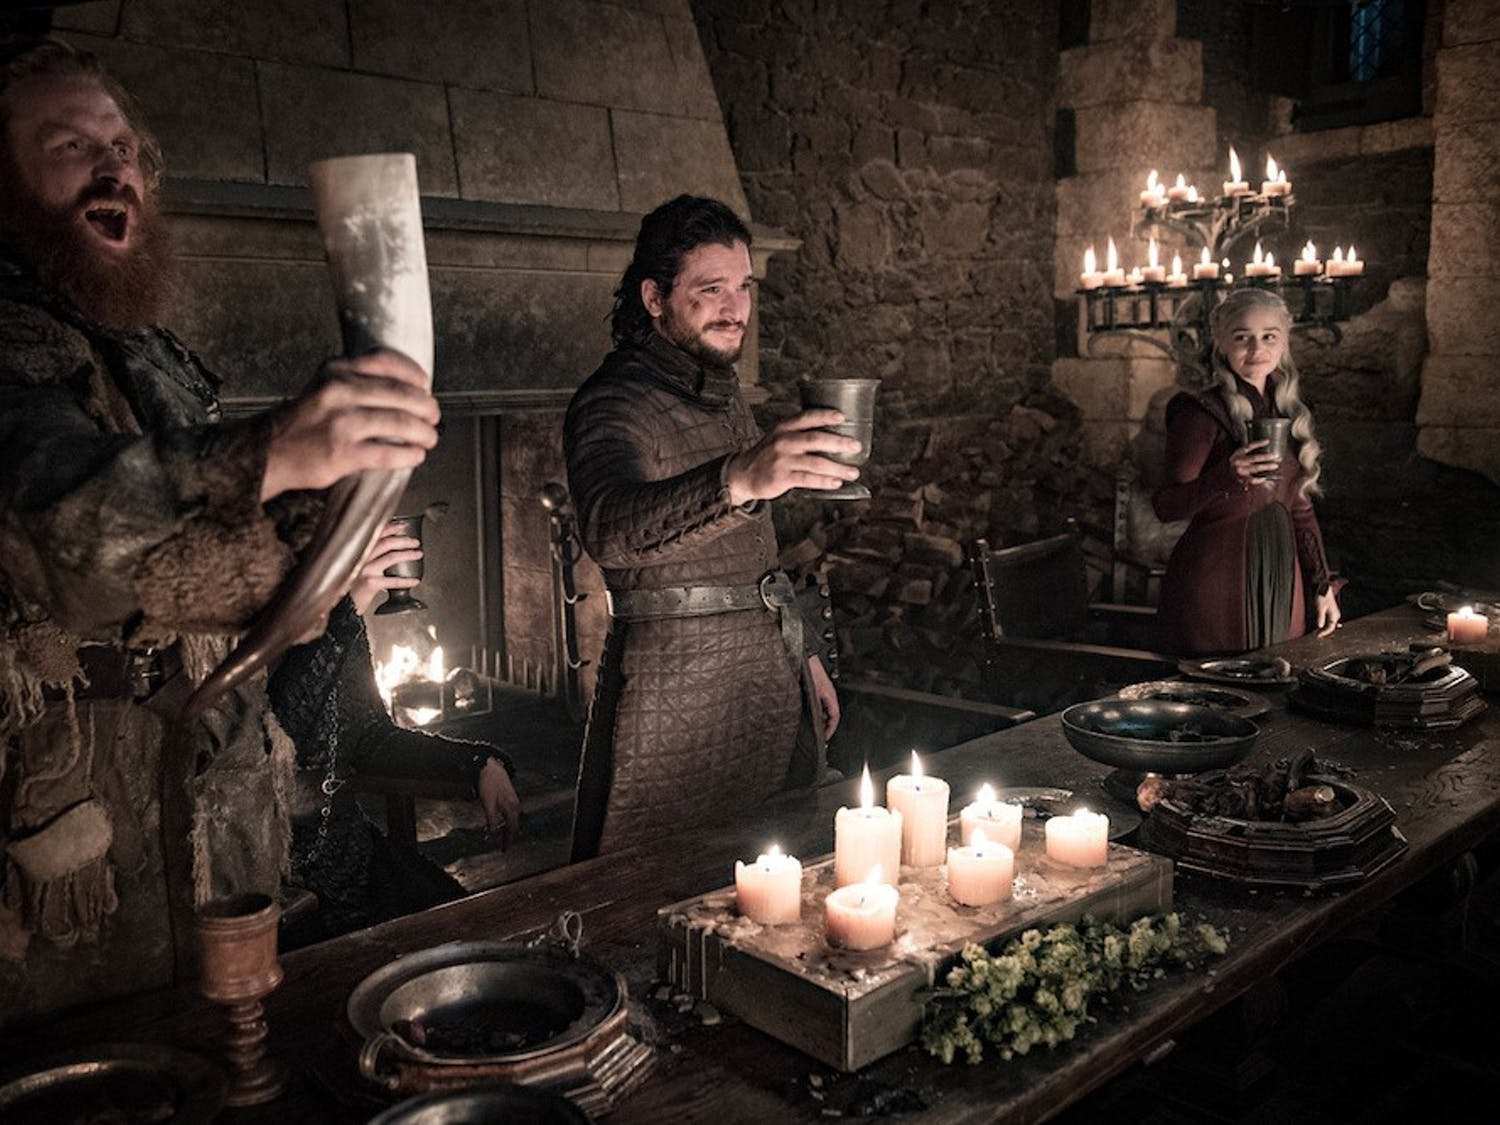 """Celebration was in order in the latest episode of the final season of """"Game of Thrones,"""" as survivors of the war of Winterfell gather in victory."""